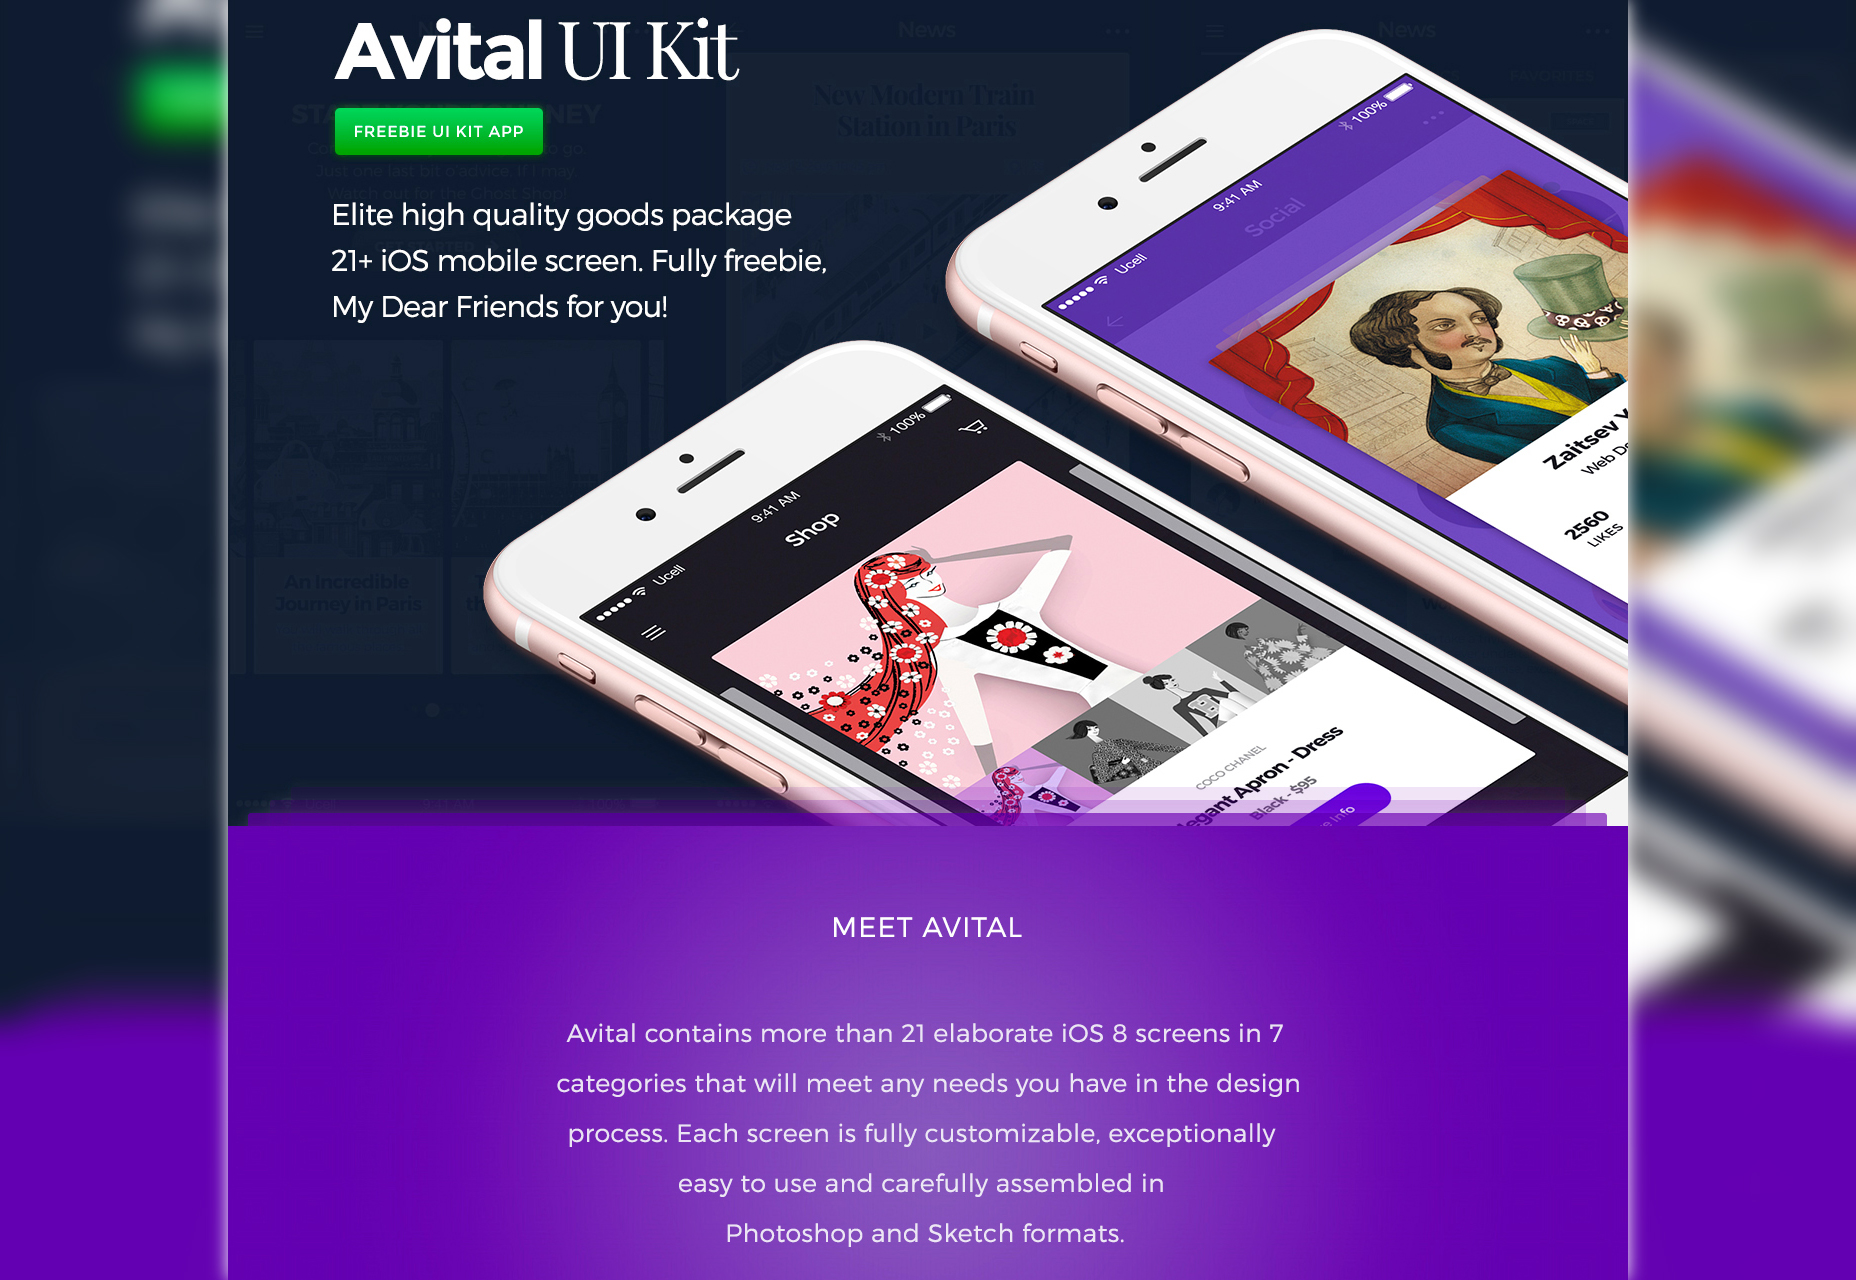 Avital: Elite Mobile iOS UI Kit